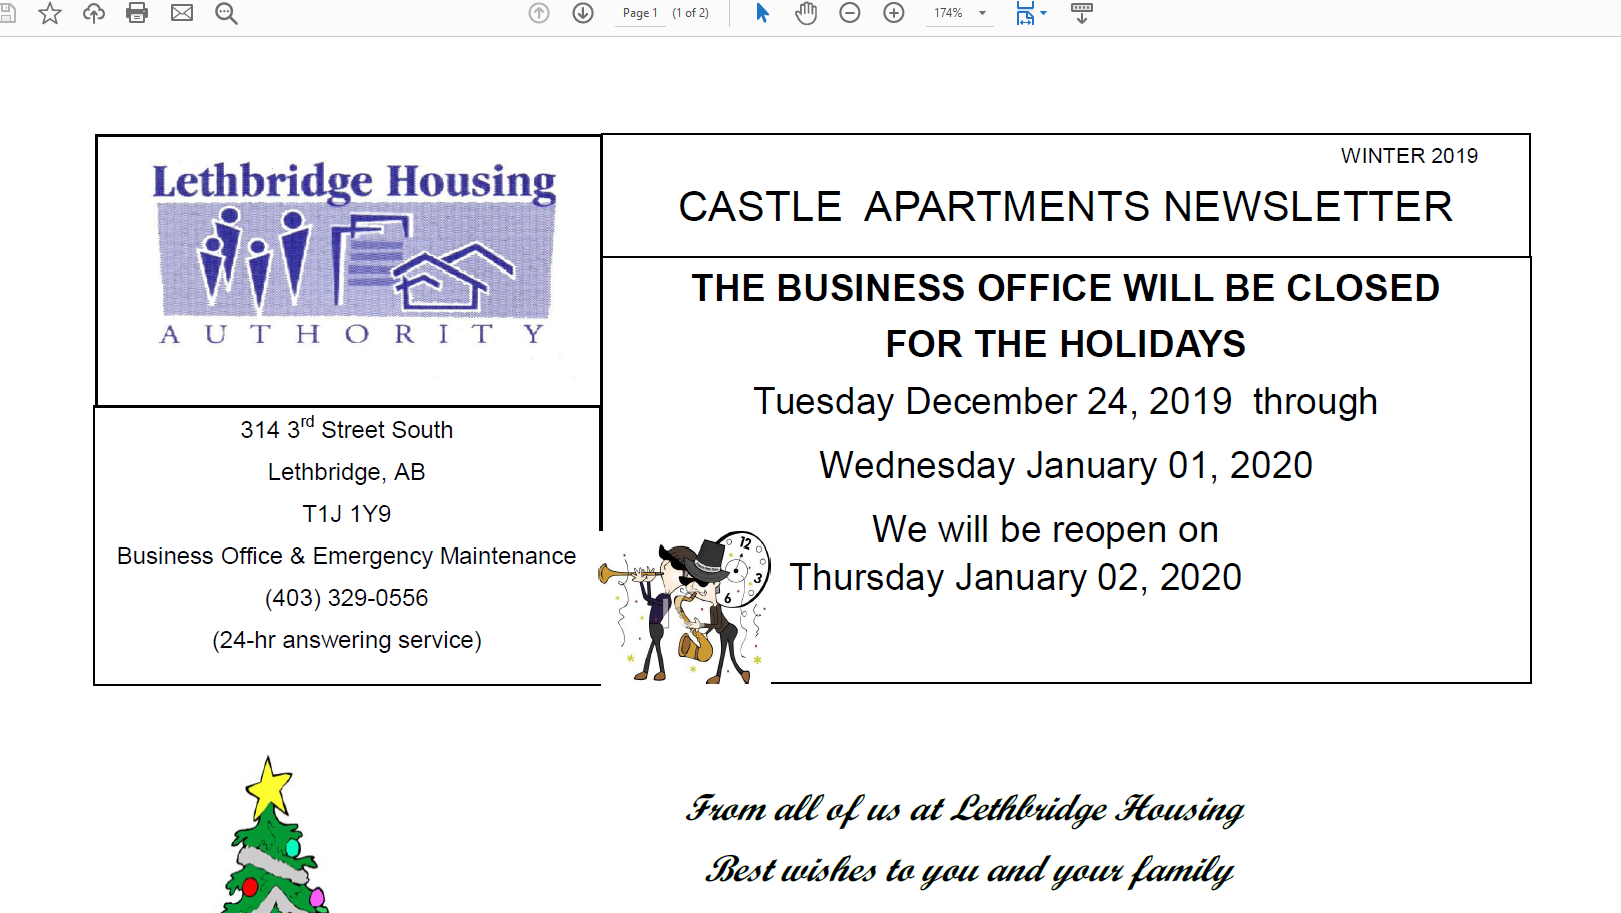 Castle Apartments Winter 2019 Newsletter